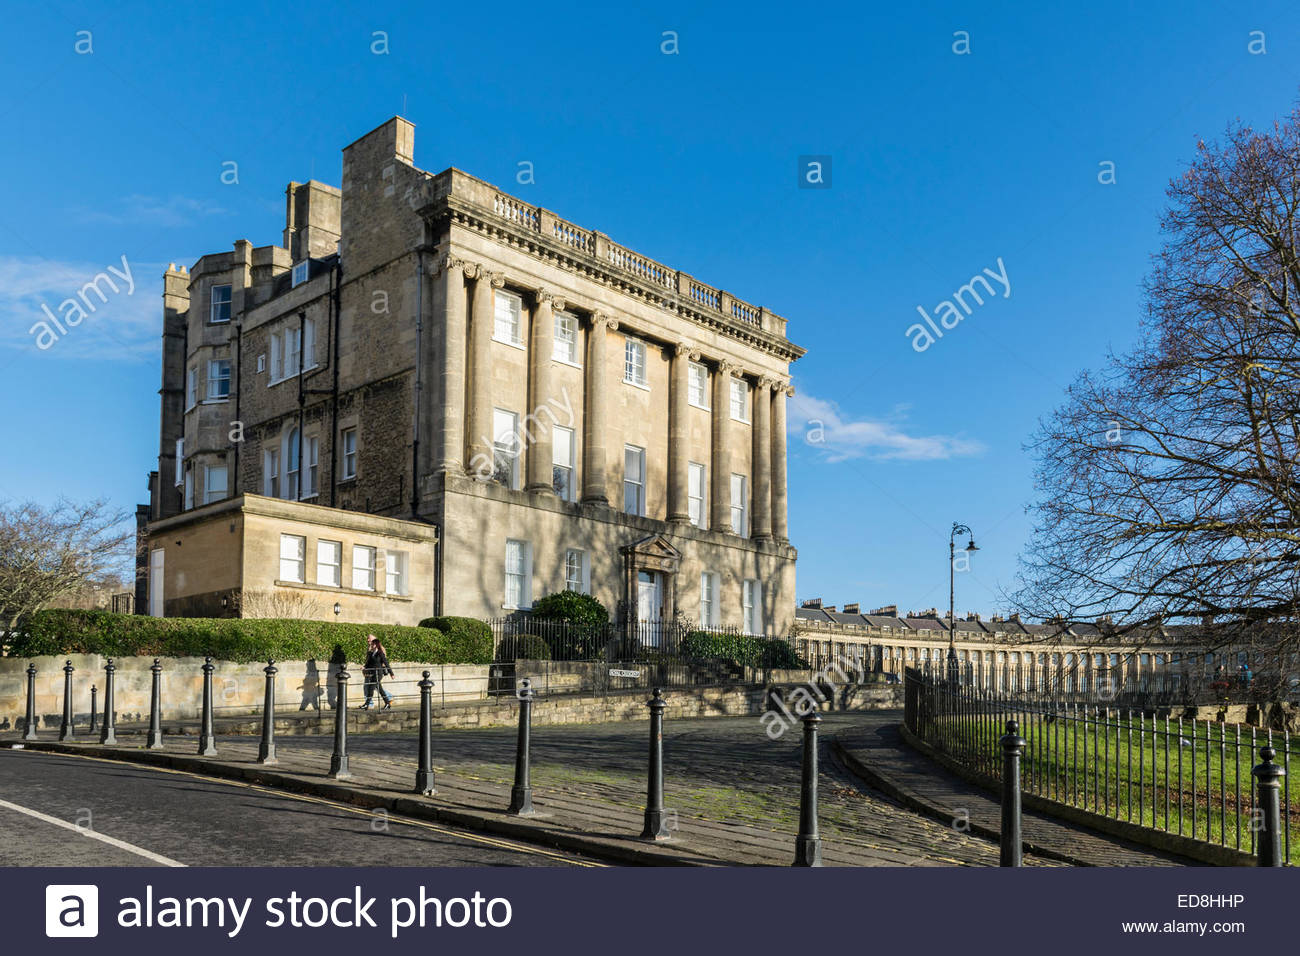 The western end of the Royal Crescent in the city of Bath, Somerset, England - Stock Image